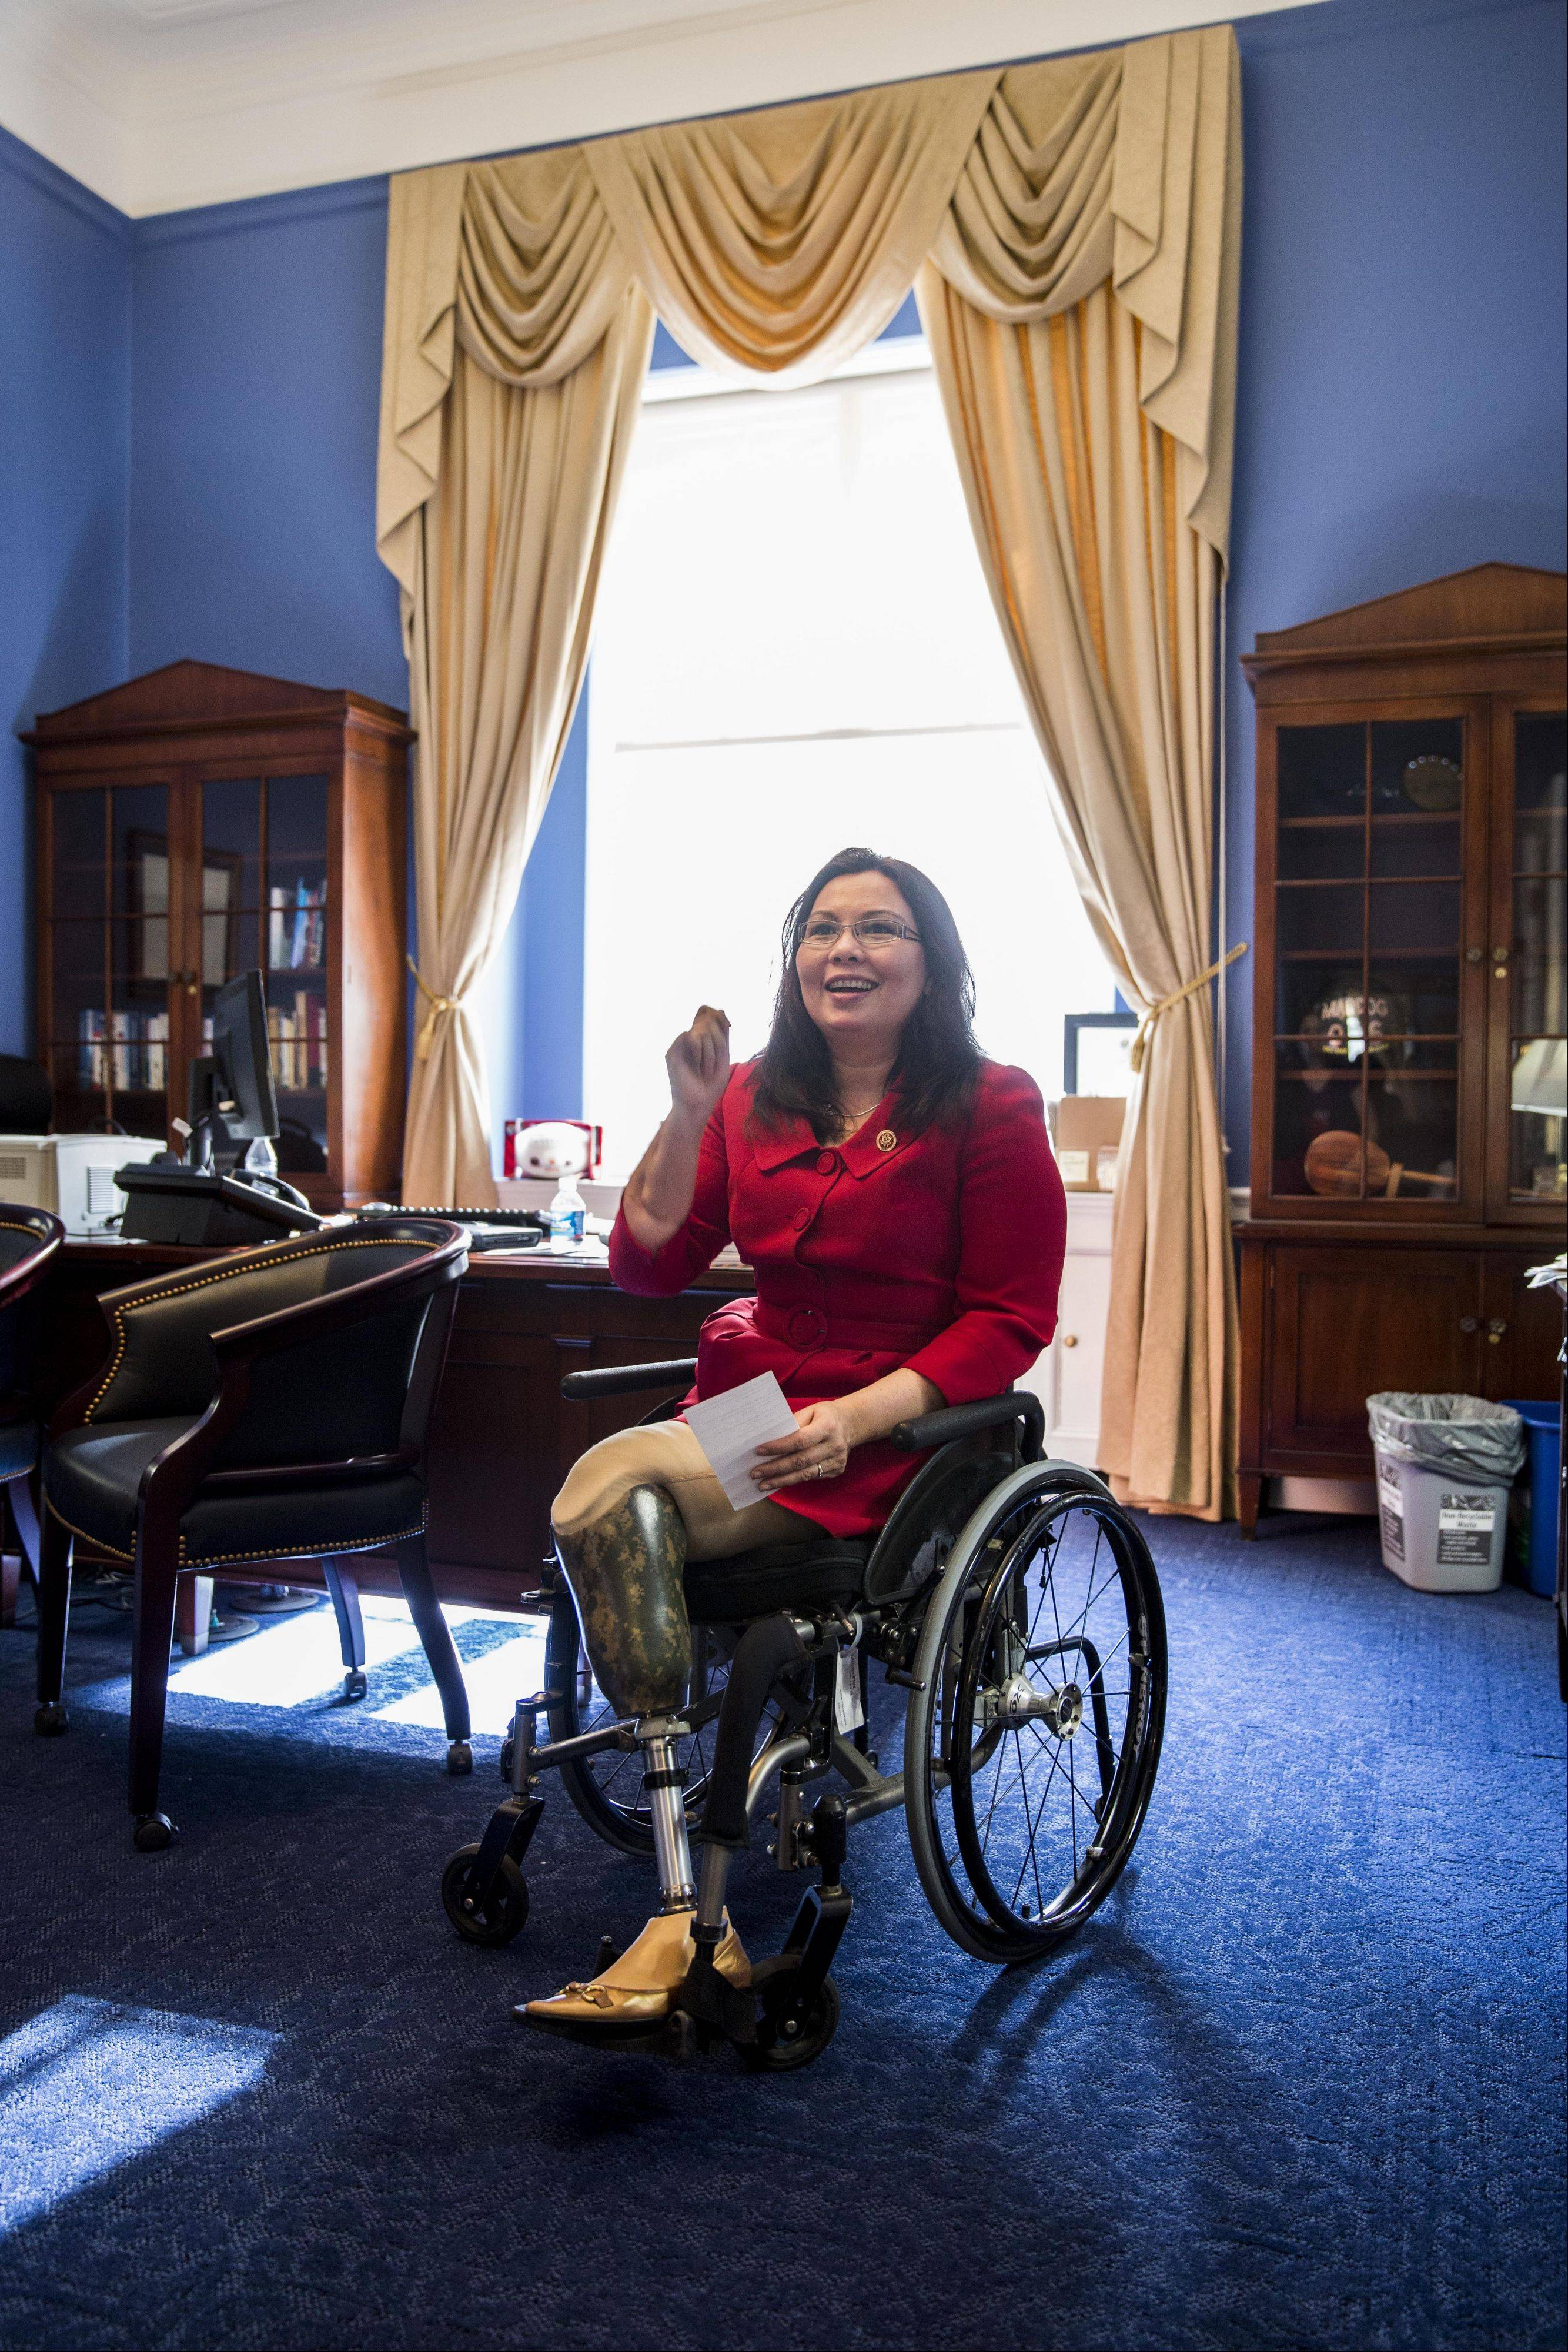 Democratic U.S. Rep. Tammy Duckworth of Hoffman Estates laughs while going over mail with staff in her office on Capitol Hill in Washington, D.C.